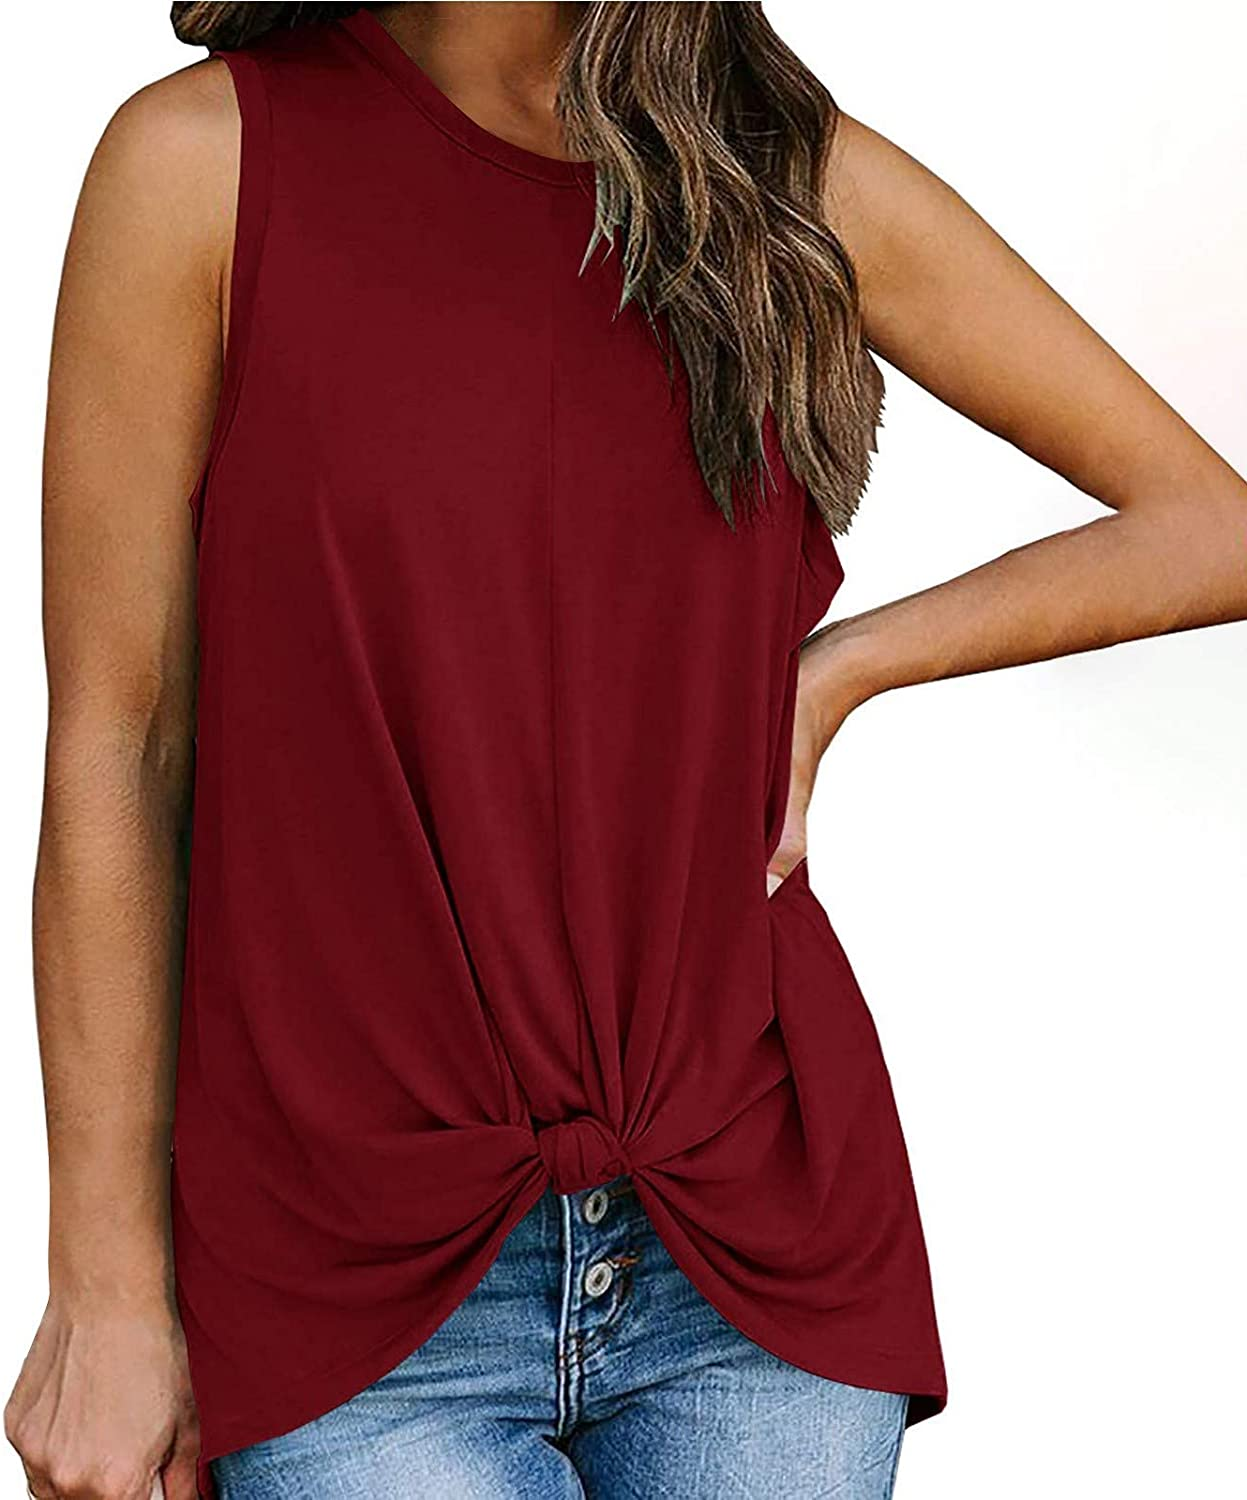 ML_Victor Womens Tank Tops,Summer O-Neck Sleeveless Solid Casual Tee Tops Fashion Workout Tank Vest Tunic Tops Shirts